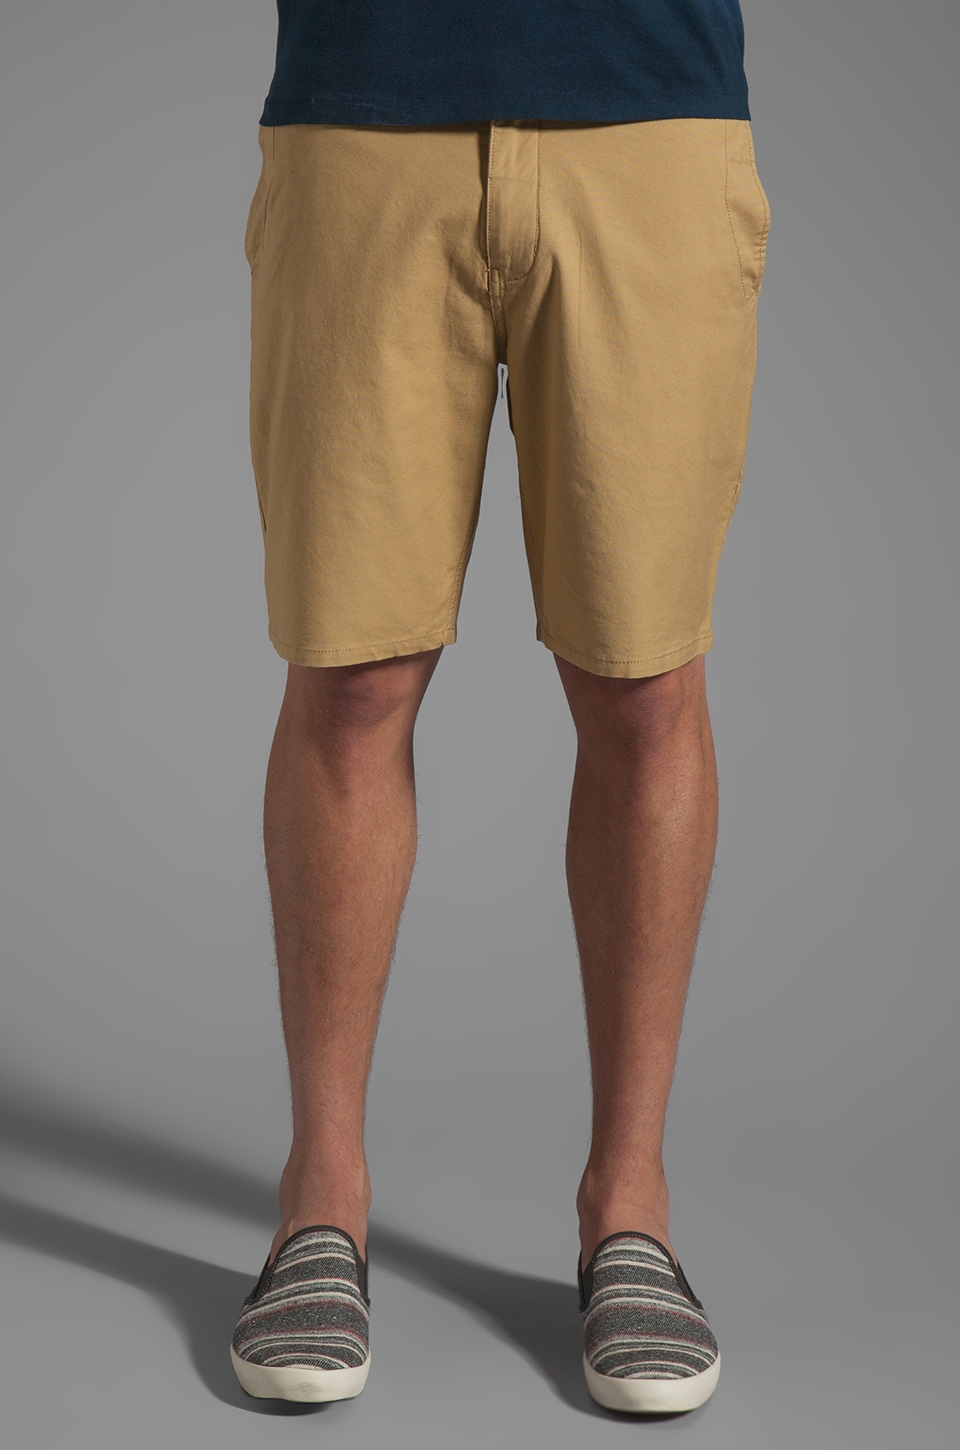 V.S.T.R Stranger Short in Sand